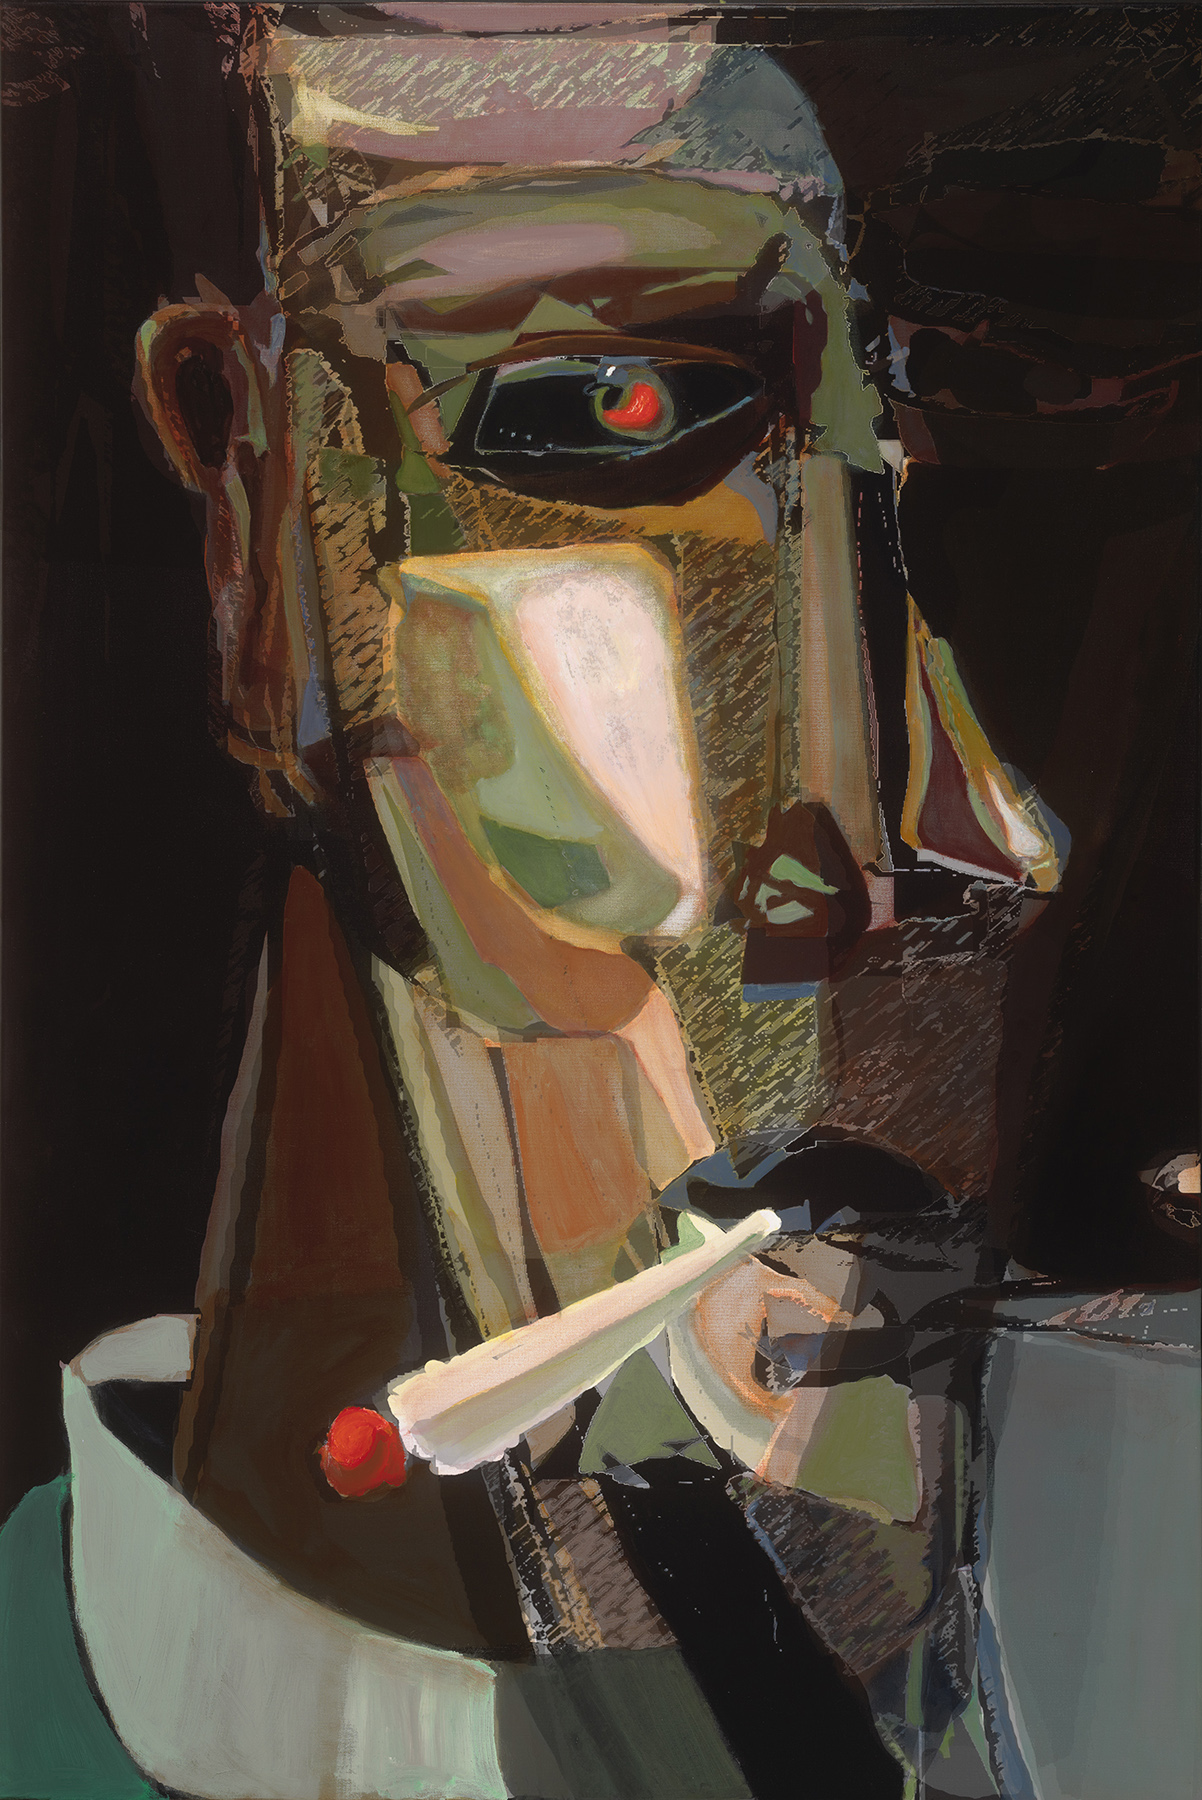 "Edmund Ian Grant ,    Palookaville,   2014, Acrylic on canvas, 60"" x 40"".  Abstract portraiture of a man with triangular shapes on cheeks and nose, smoking a cigarette. Green dominating with tan and red color on black background."